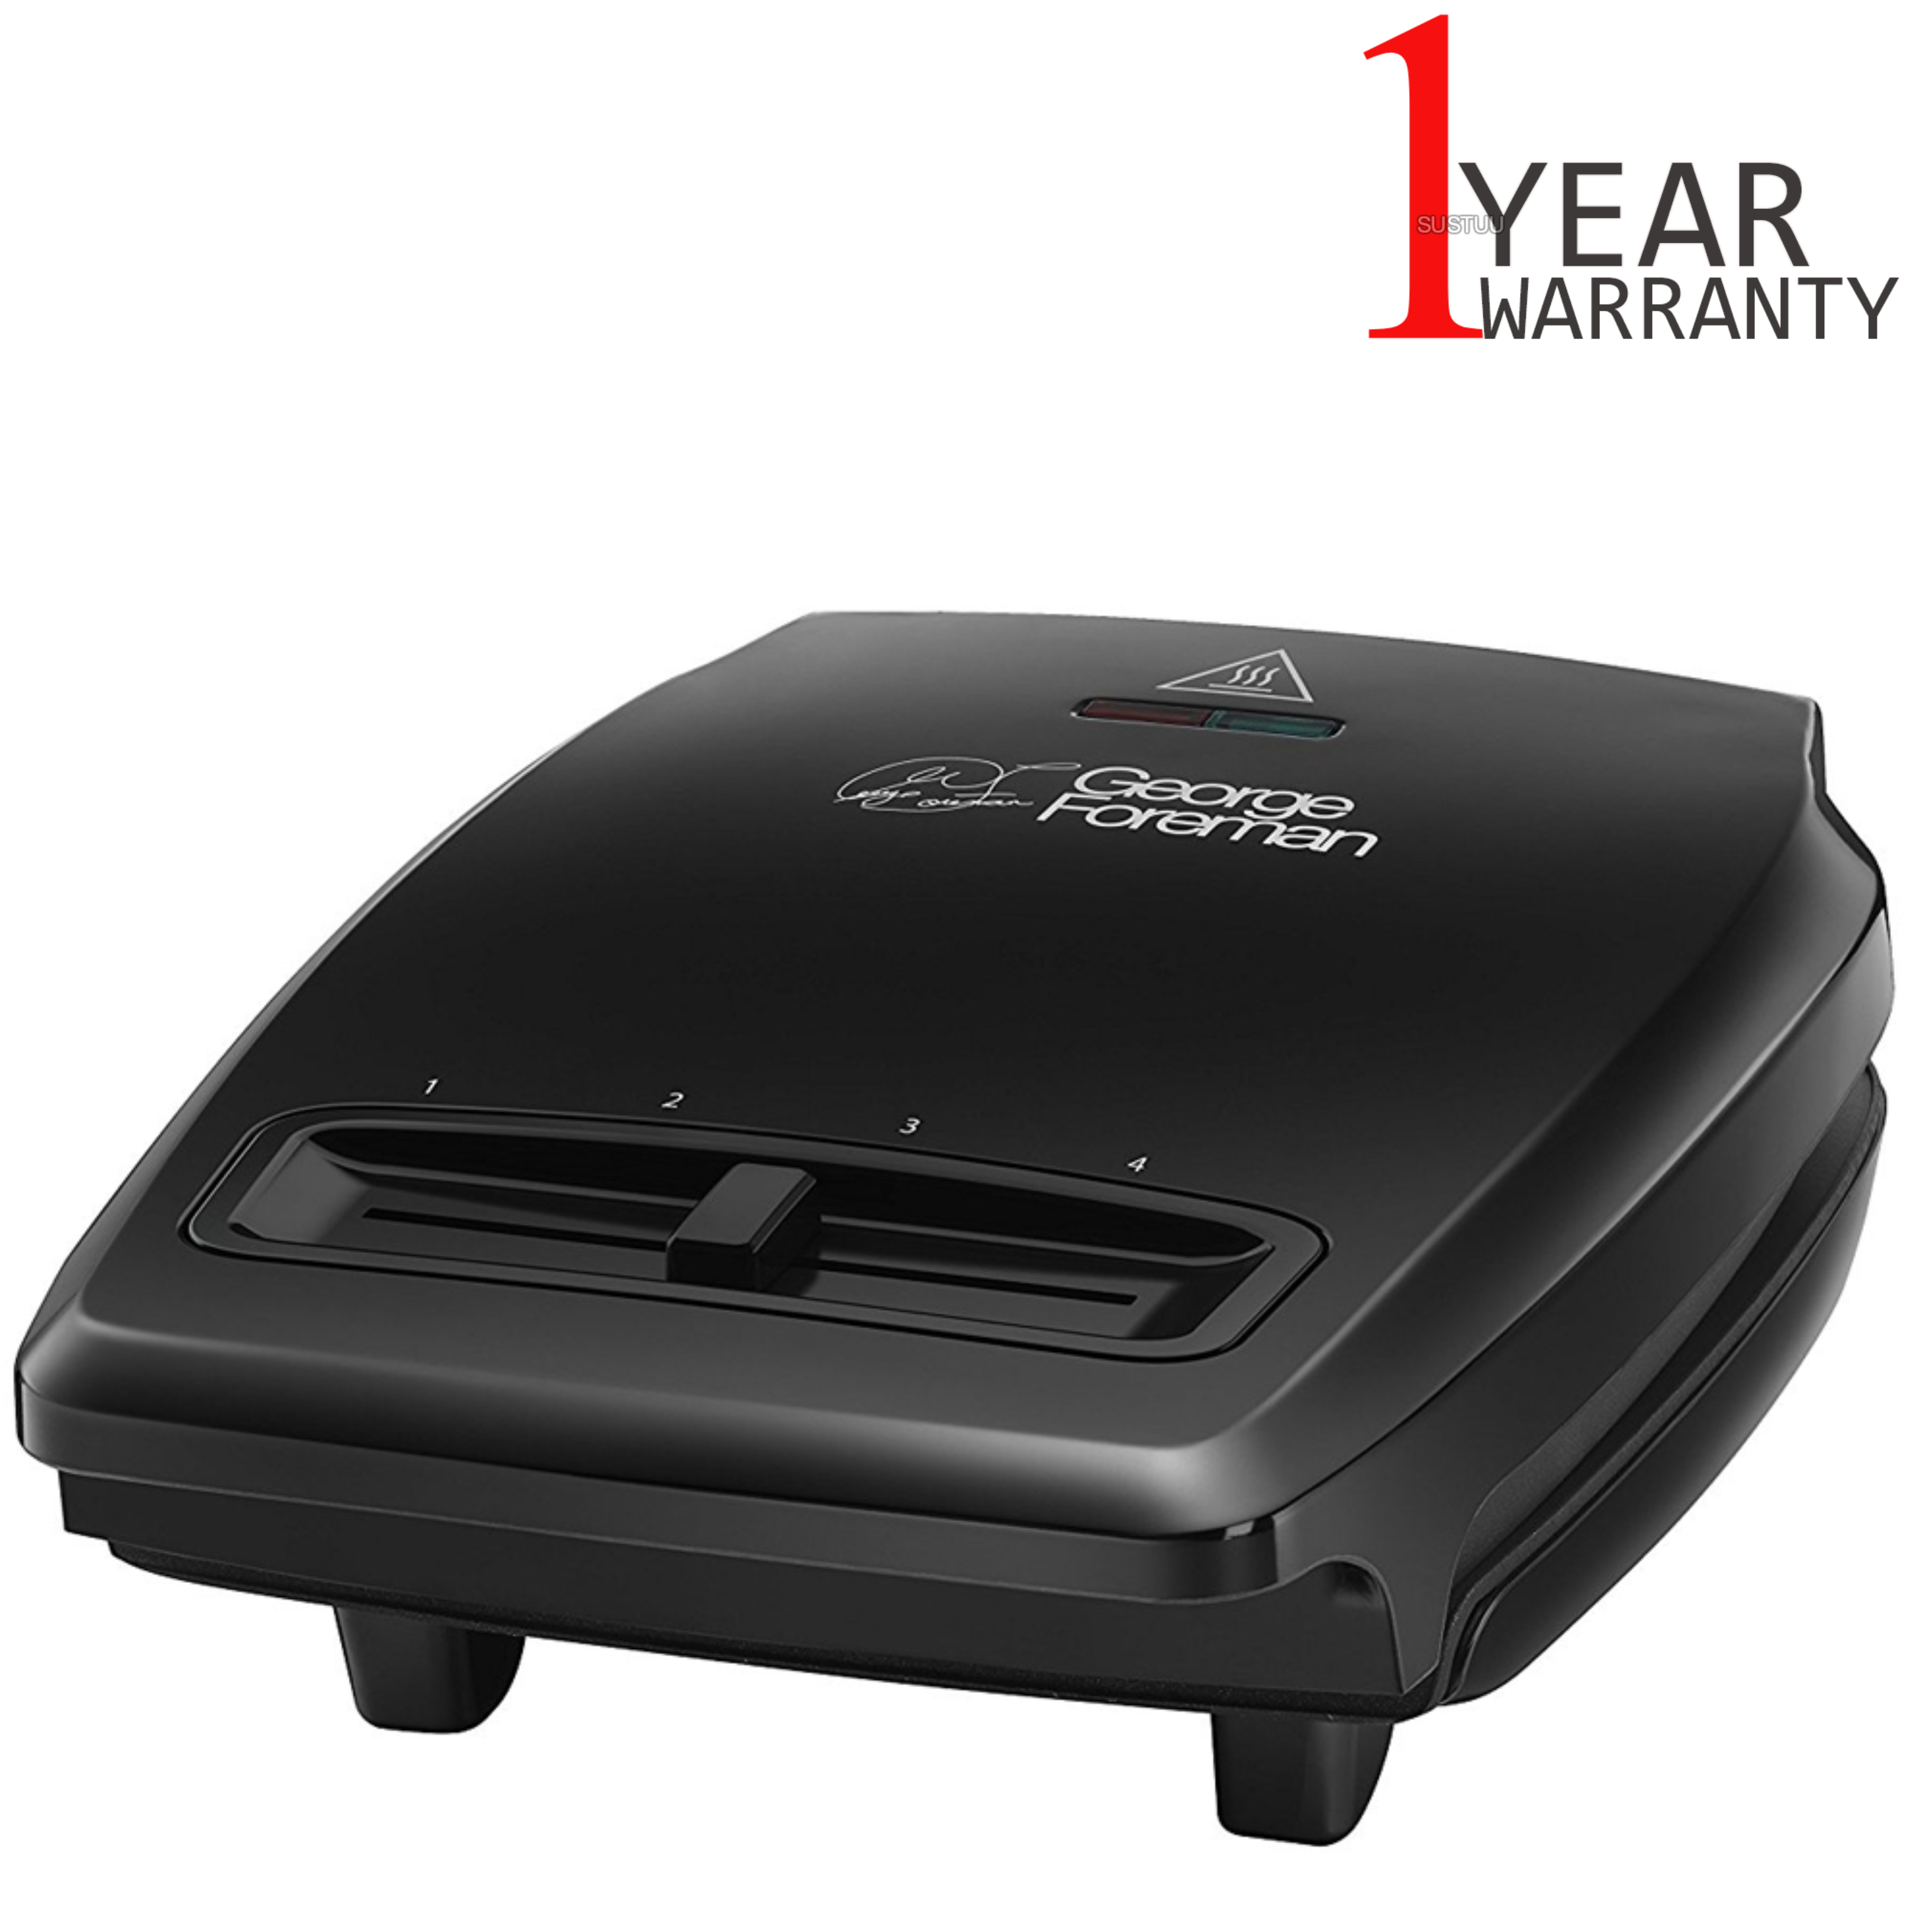 George foreman compact 3 portion grill variable temperature drip tray 1100w new sustuu - Drip tray george foreman grill ...